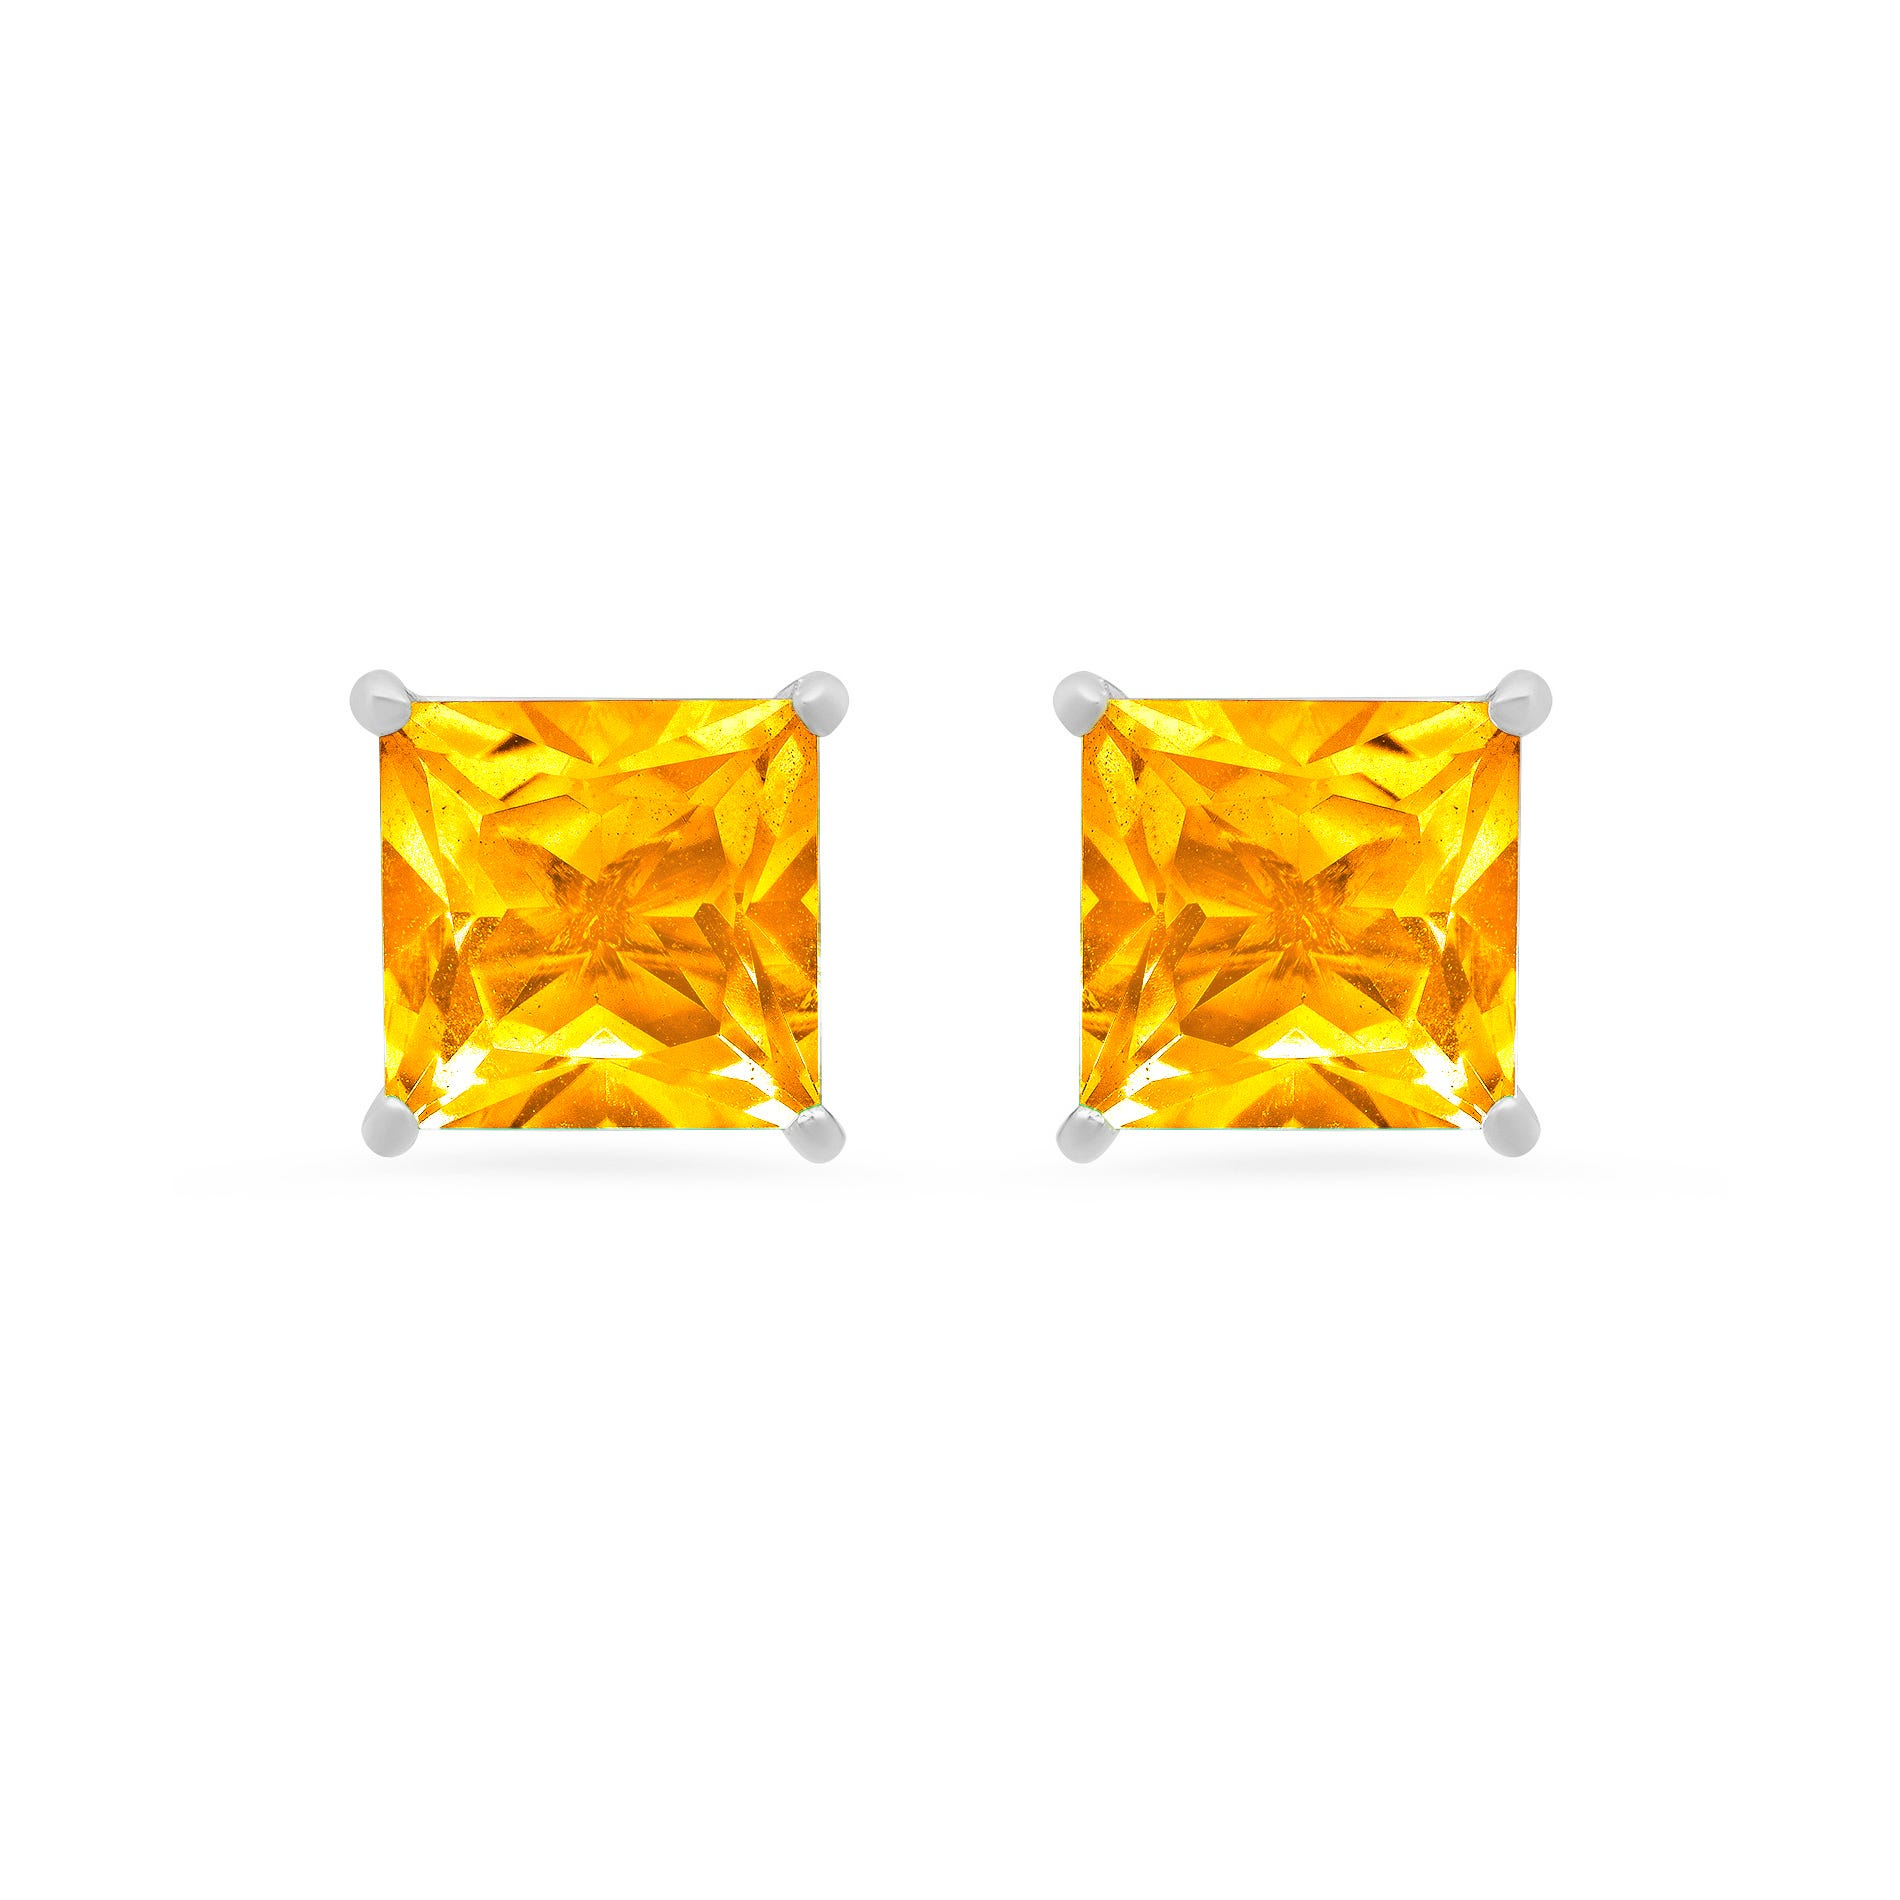 Princess-Cut Citrine Solitaire Stud Earrings in 14k White Gold